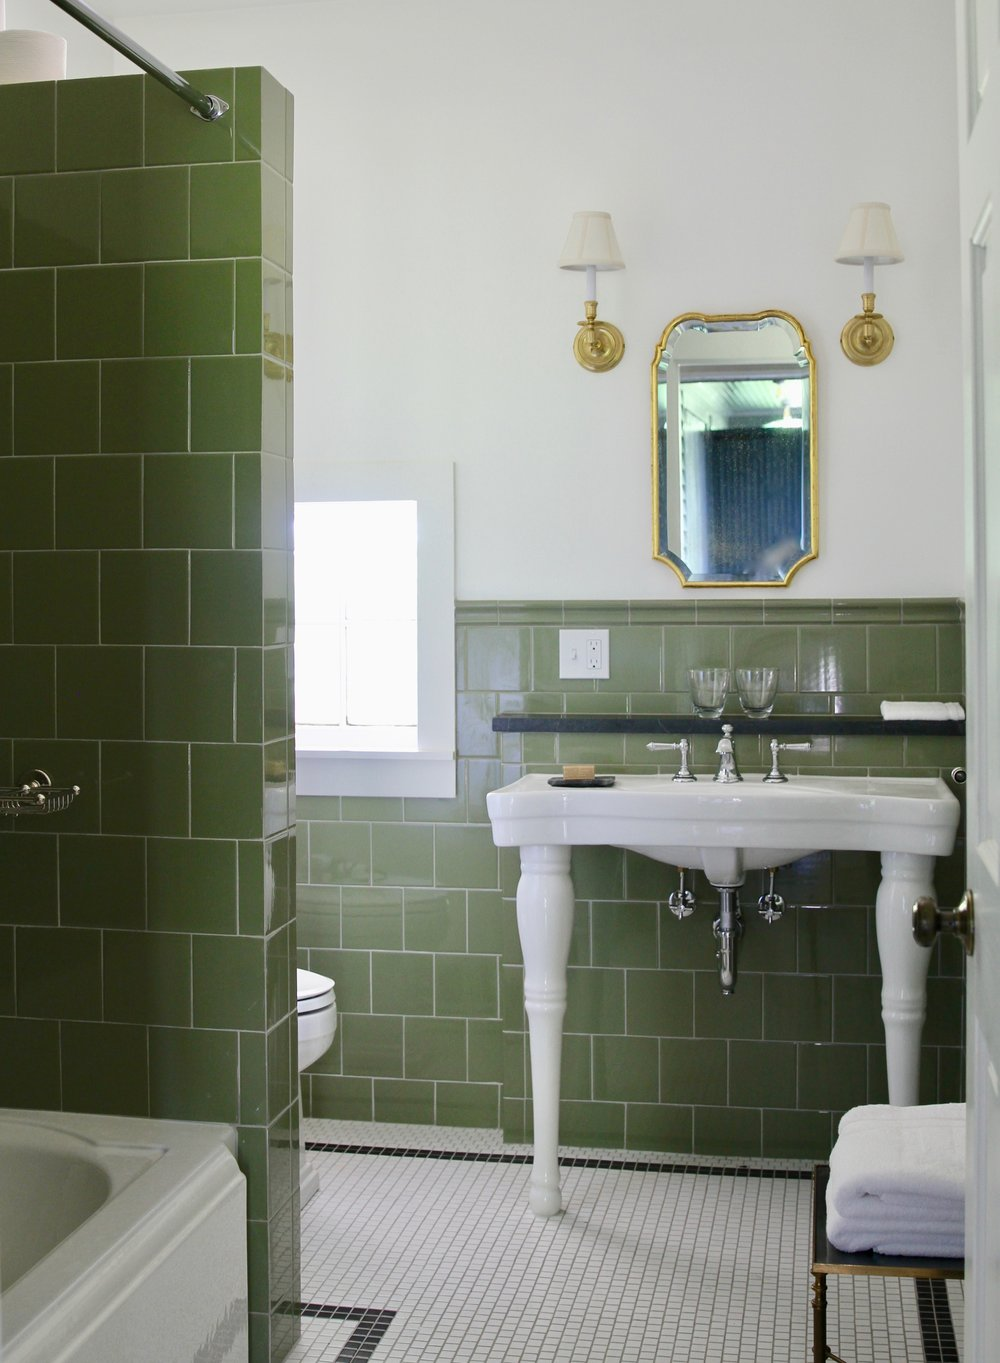 Carriage House Cottage   Moss green tiles adorn the bathroom here. A cast iron tub with shower, and radiant heated mosaic tile floors add a bit of elegance. Toiletries by   Aesop  .